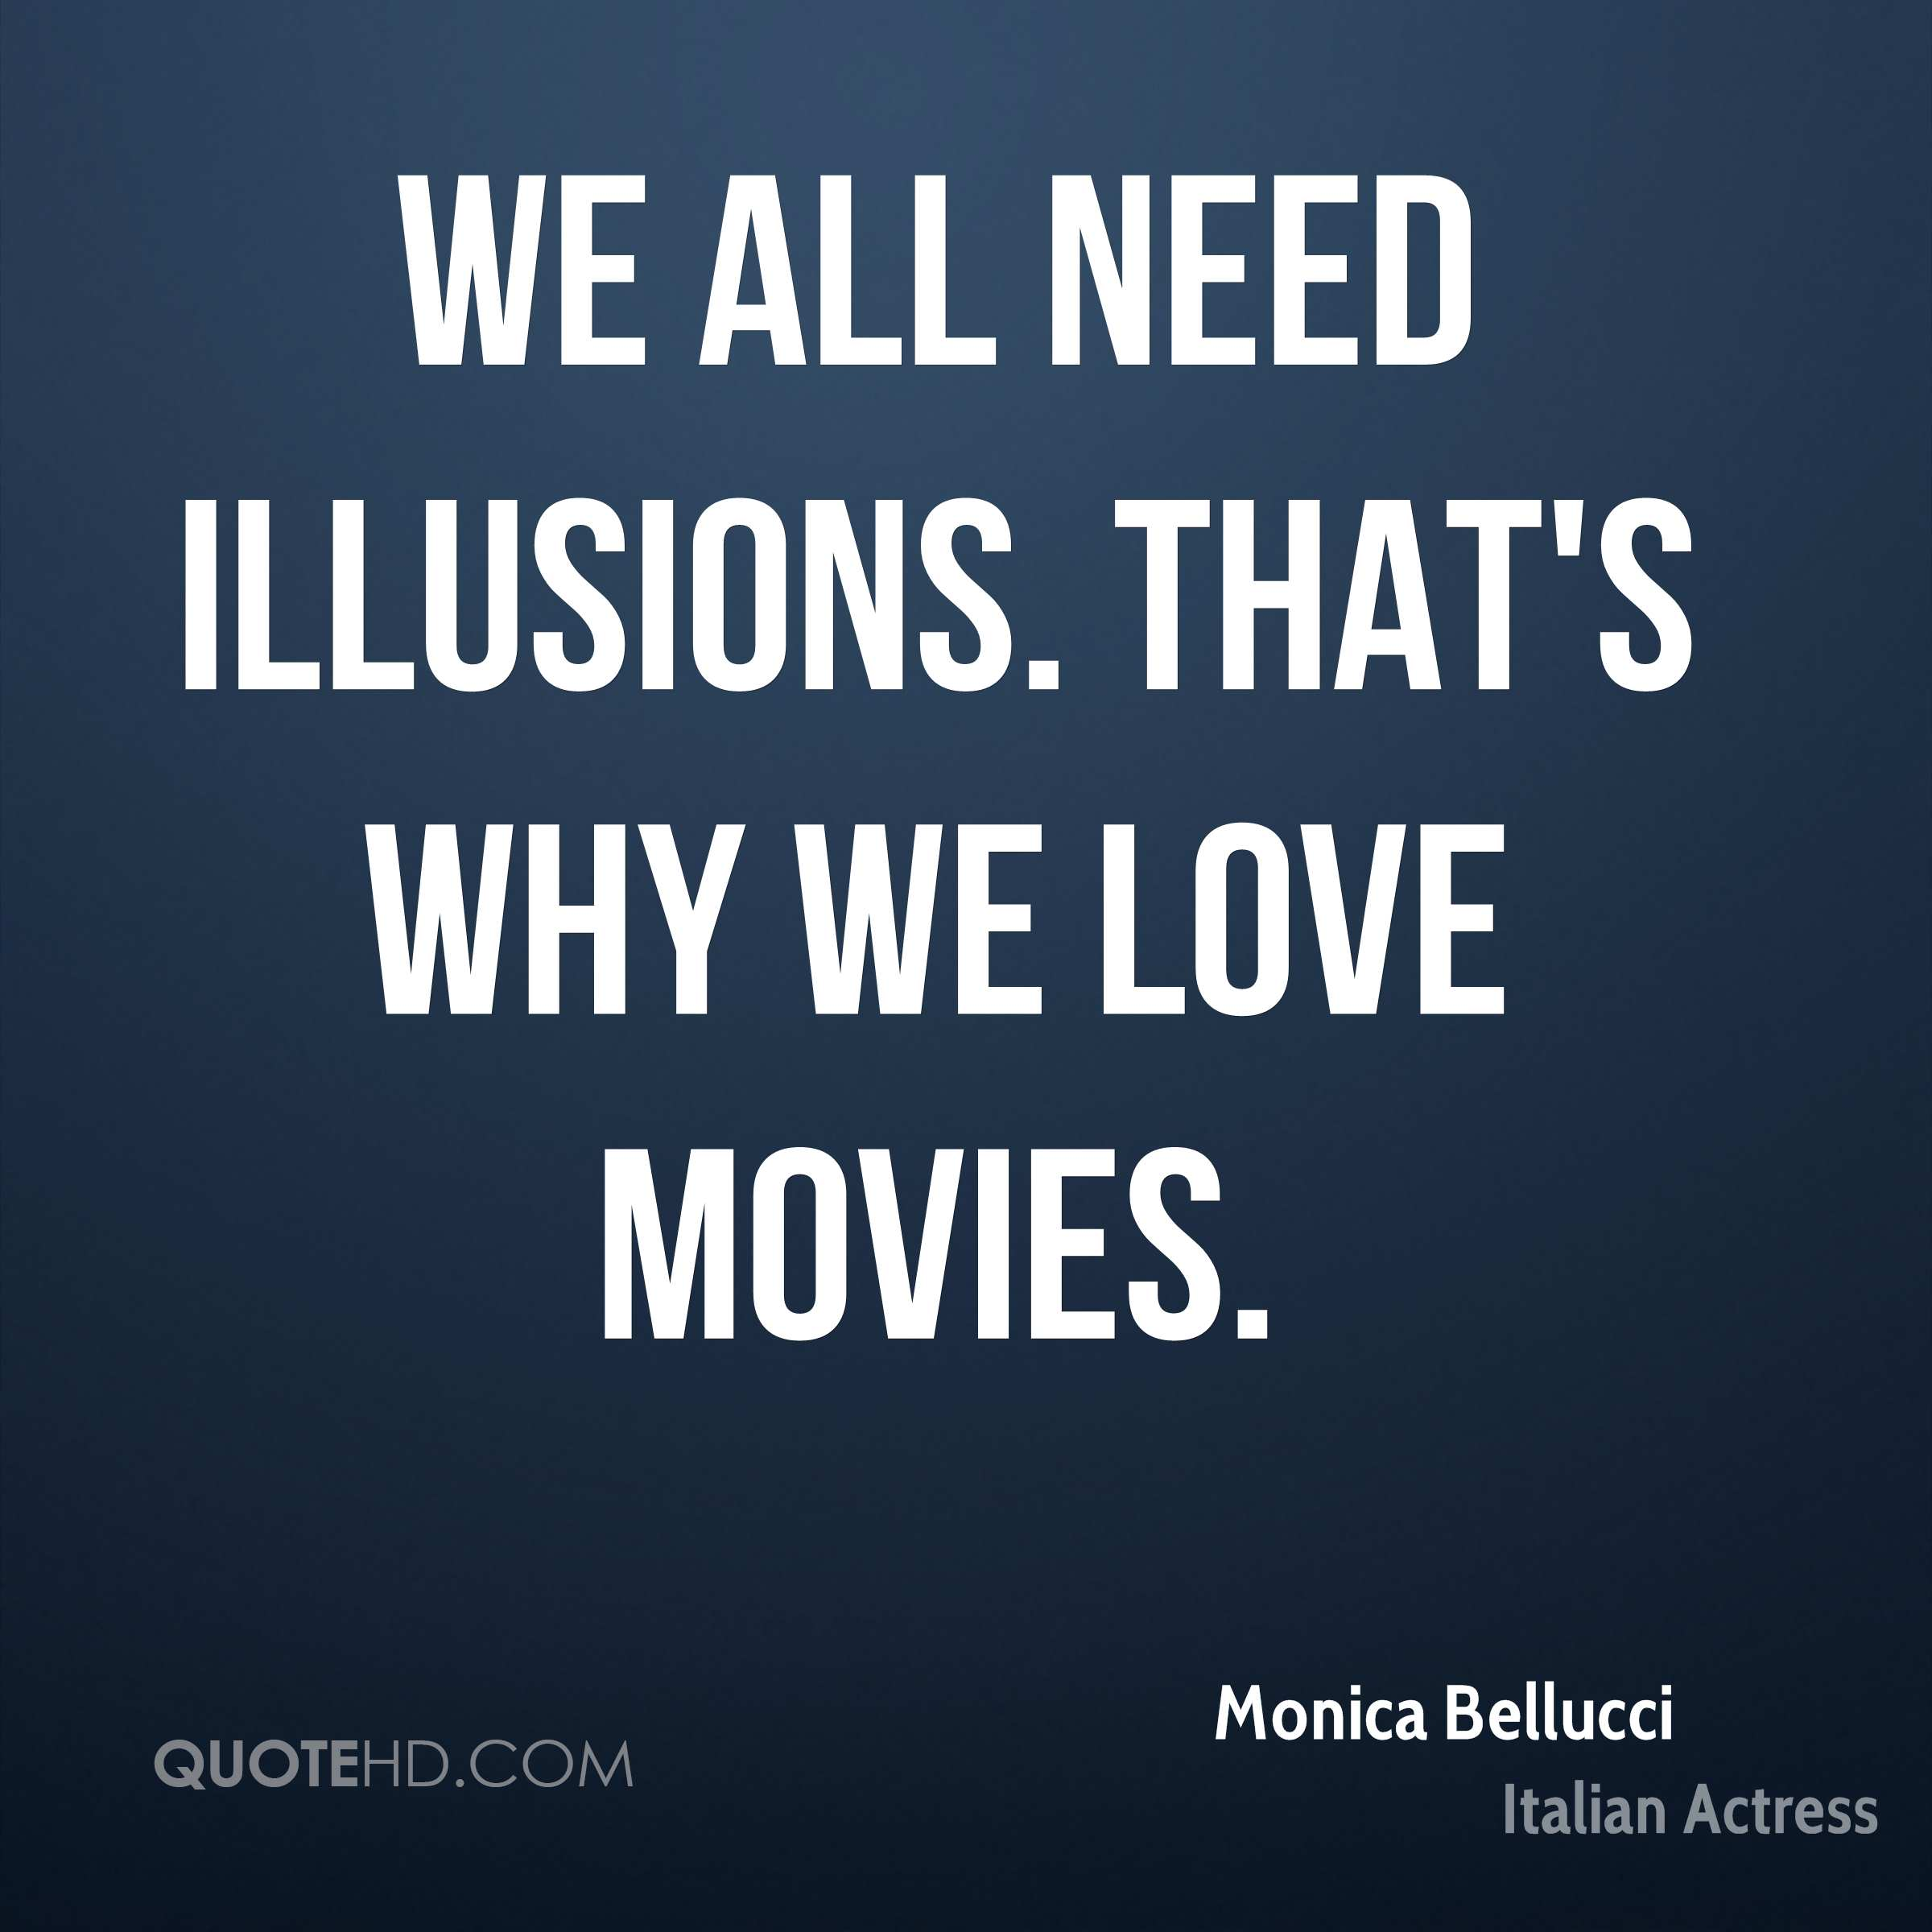 We all need illusions. That's why we love movies.